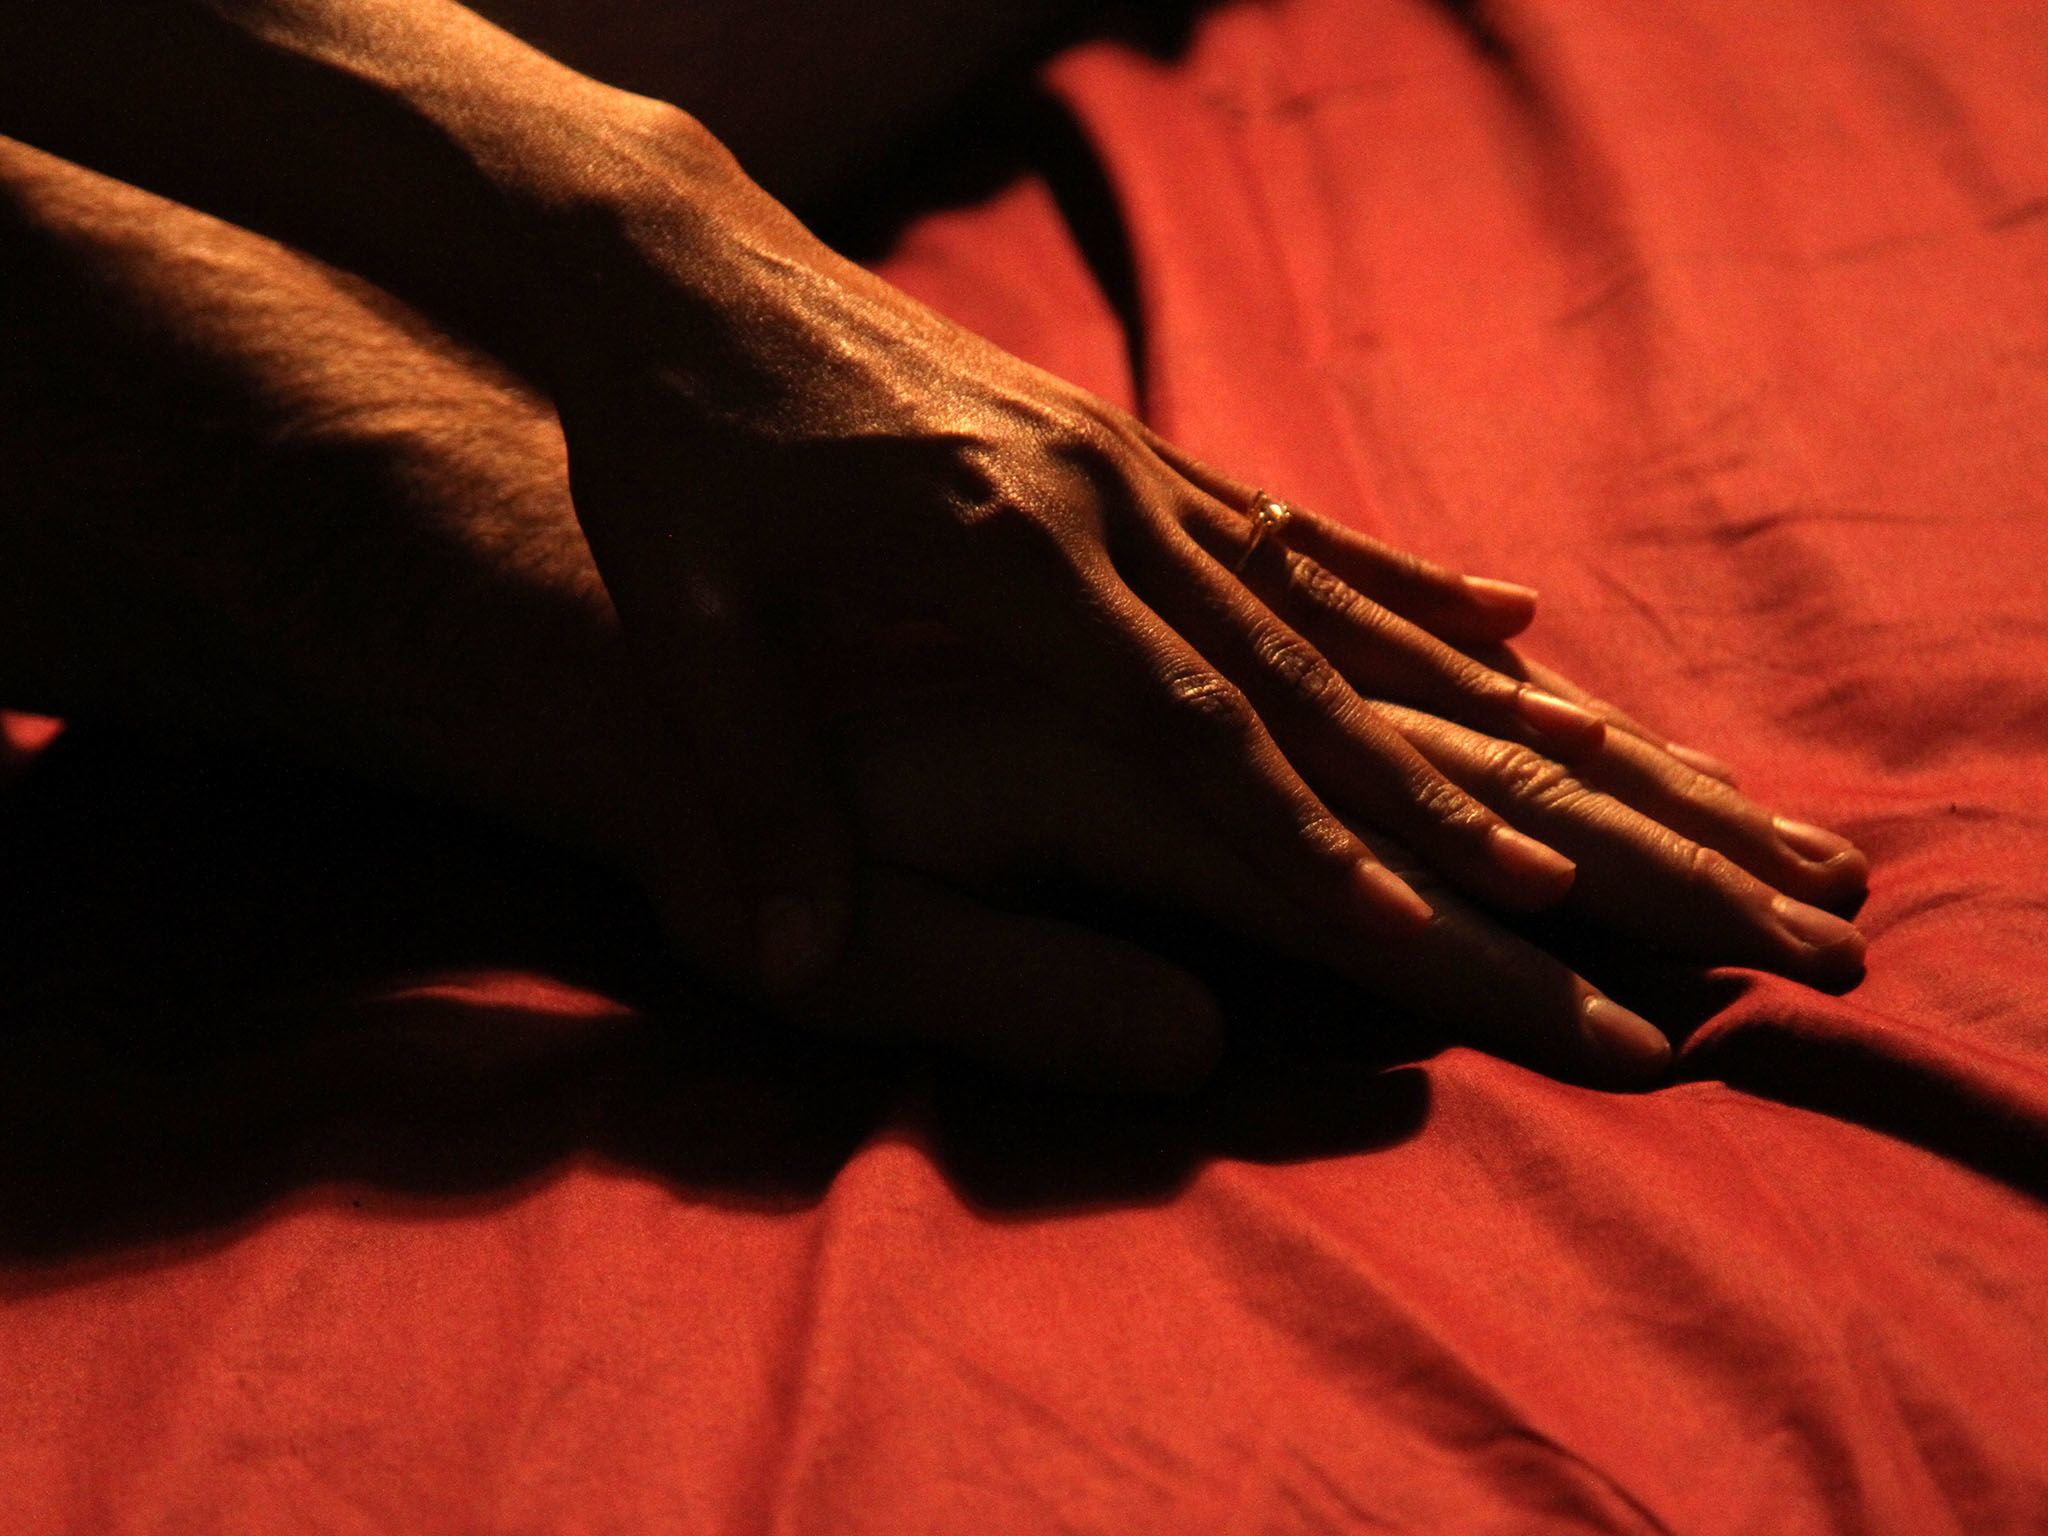 Los Angeles, Calif.: A couple's hands in bed together. This image is from Original Sin: Sex. [Photo of the day - September 2016]